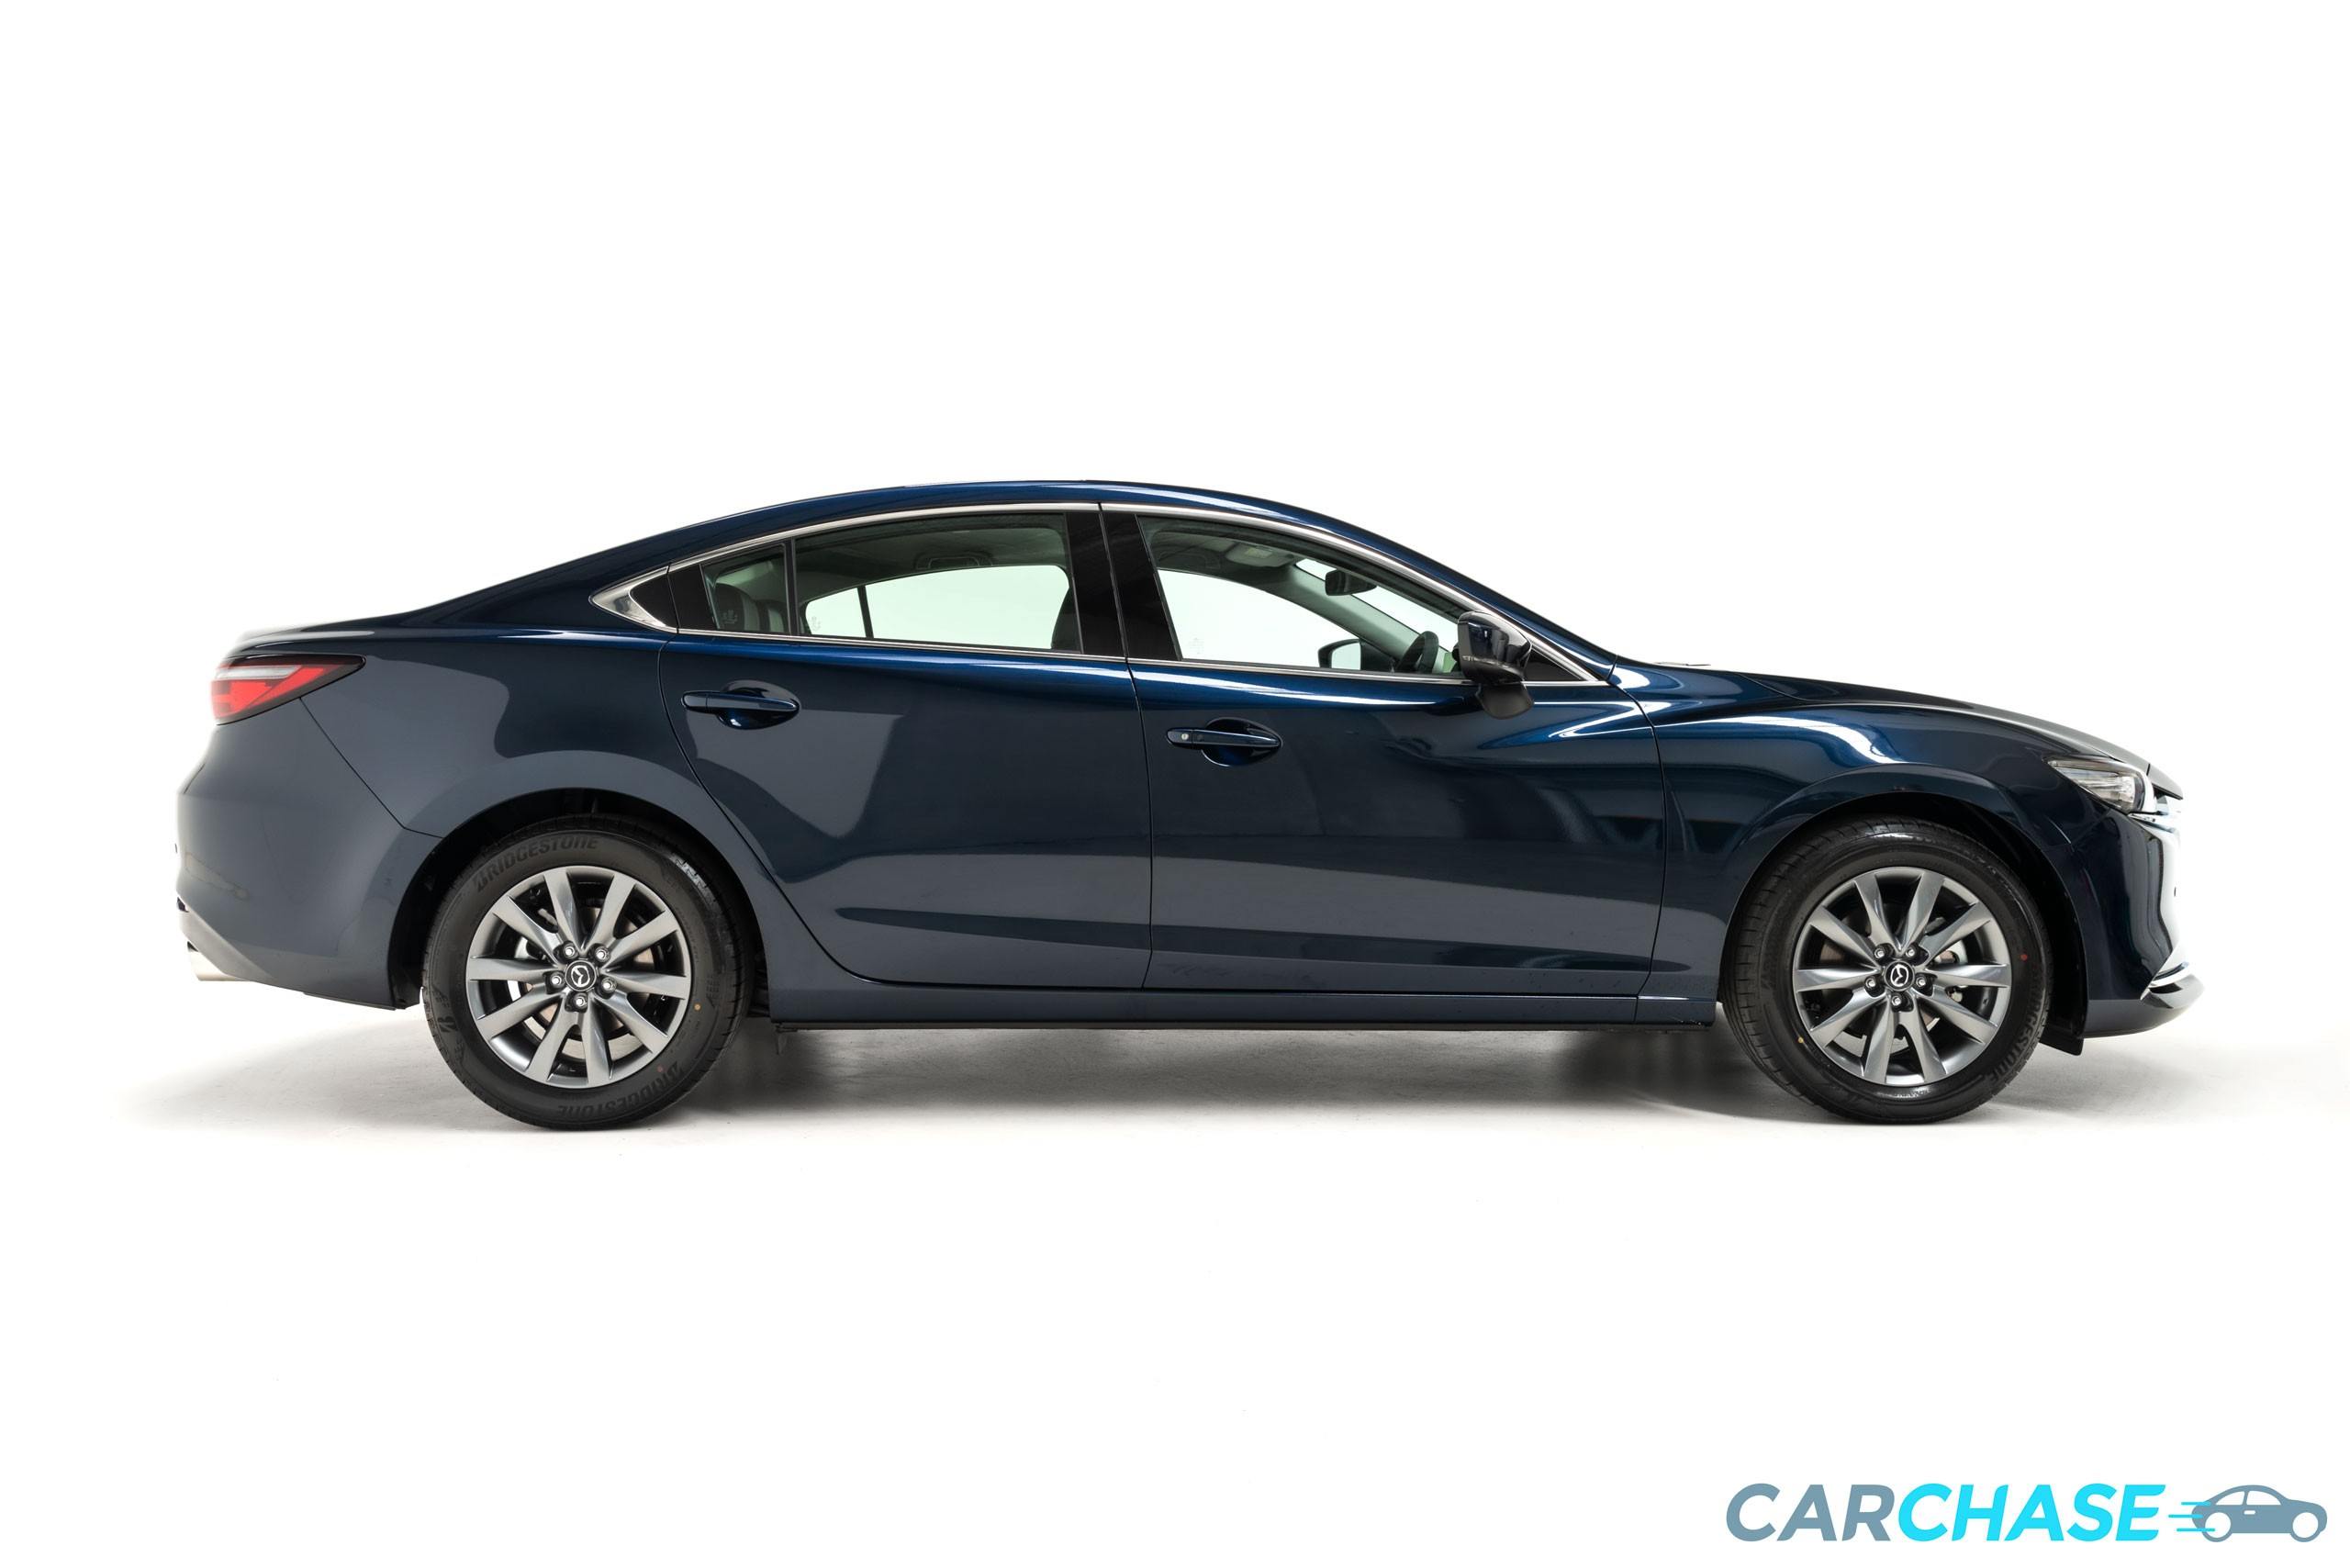 Image of right profile of 2019 Mazda 6 Touring